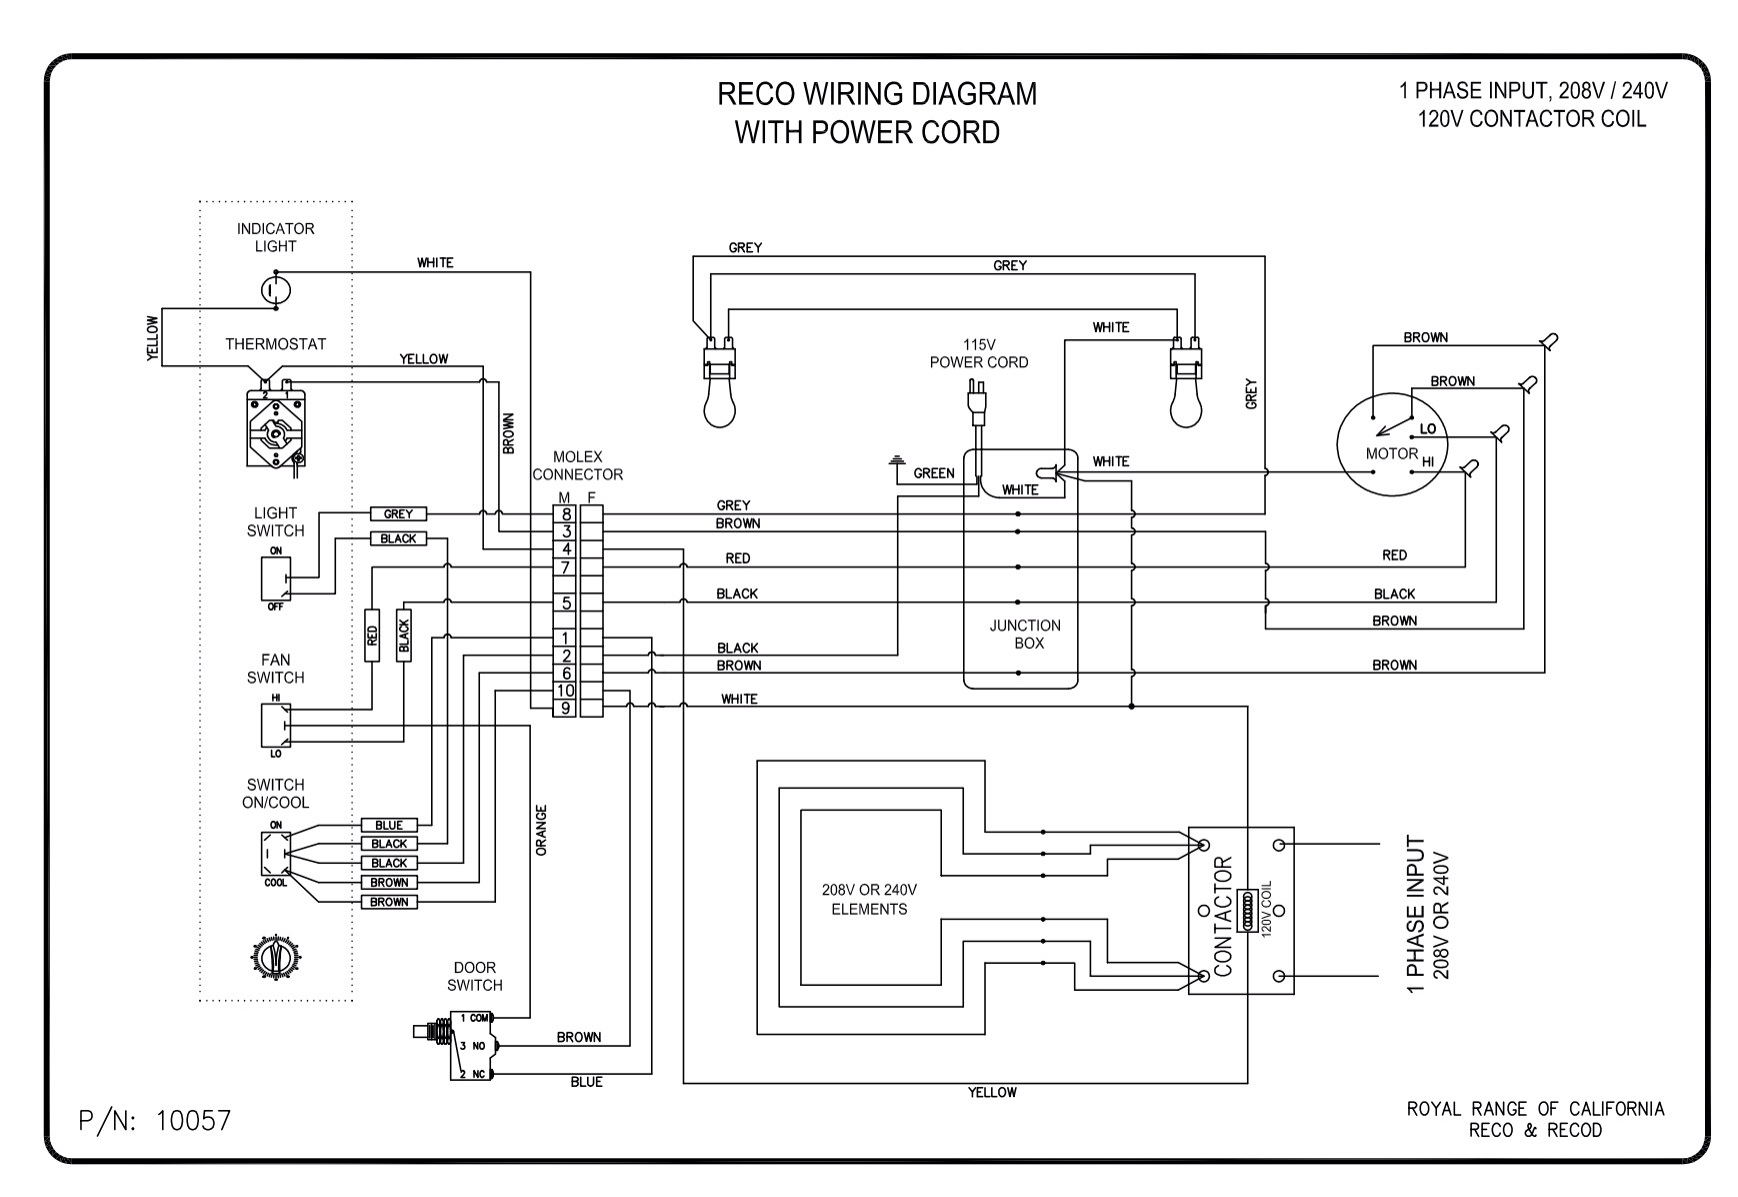 208 230 Volt Wiring Diagram Circuit Symbols Three Phase 240v Complete Diagrams Images Gallery